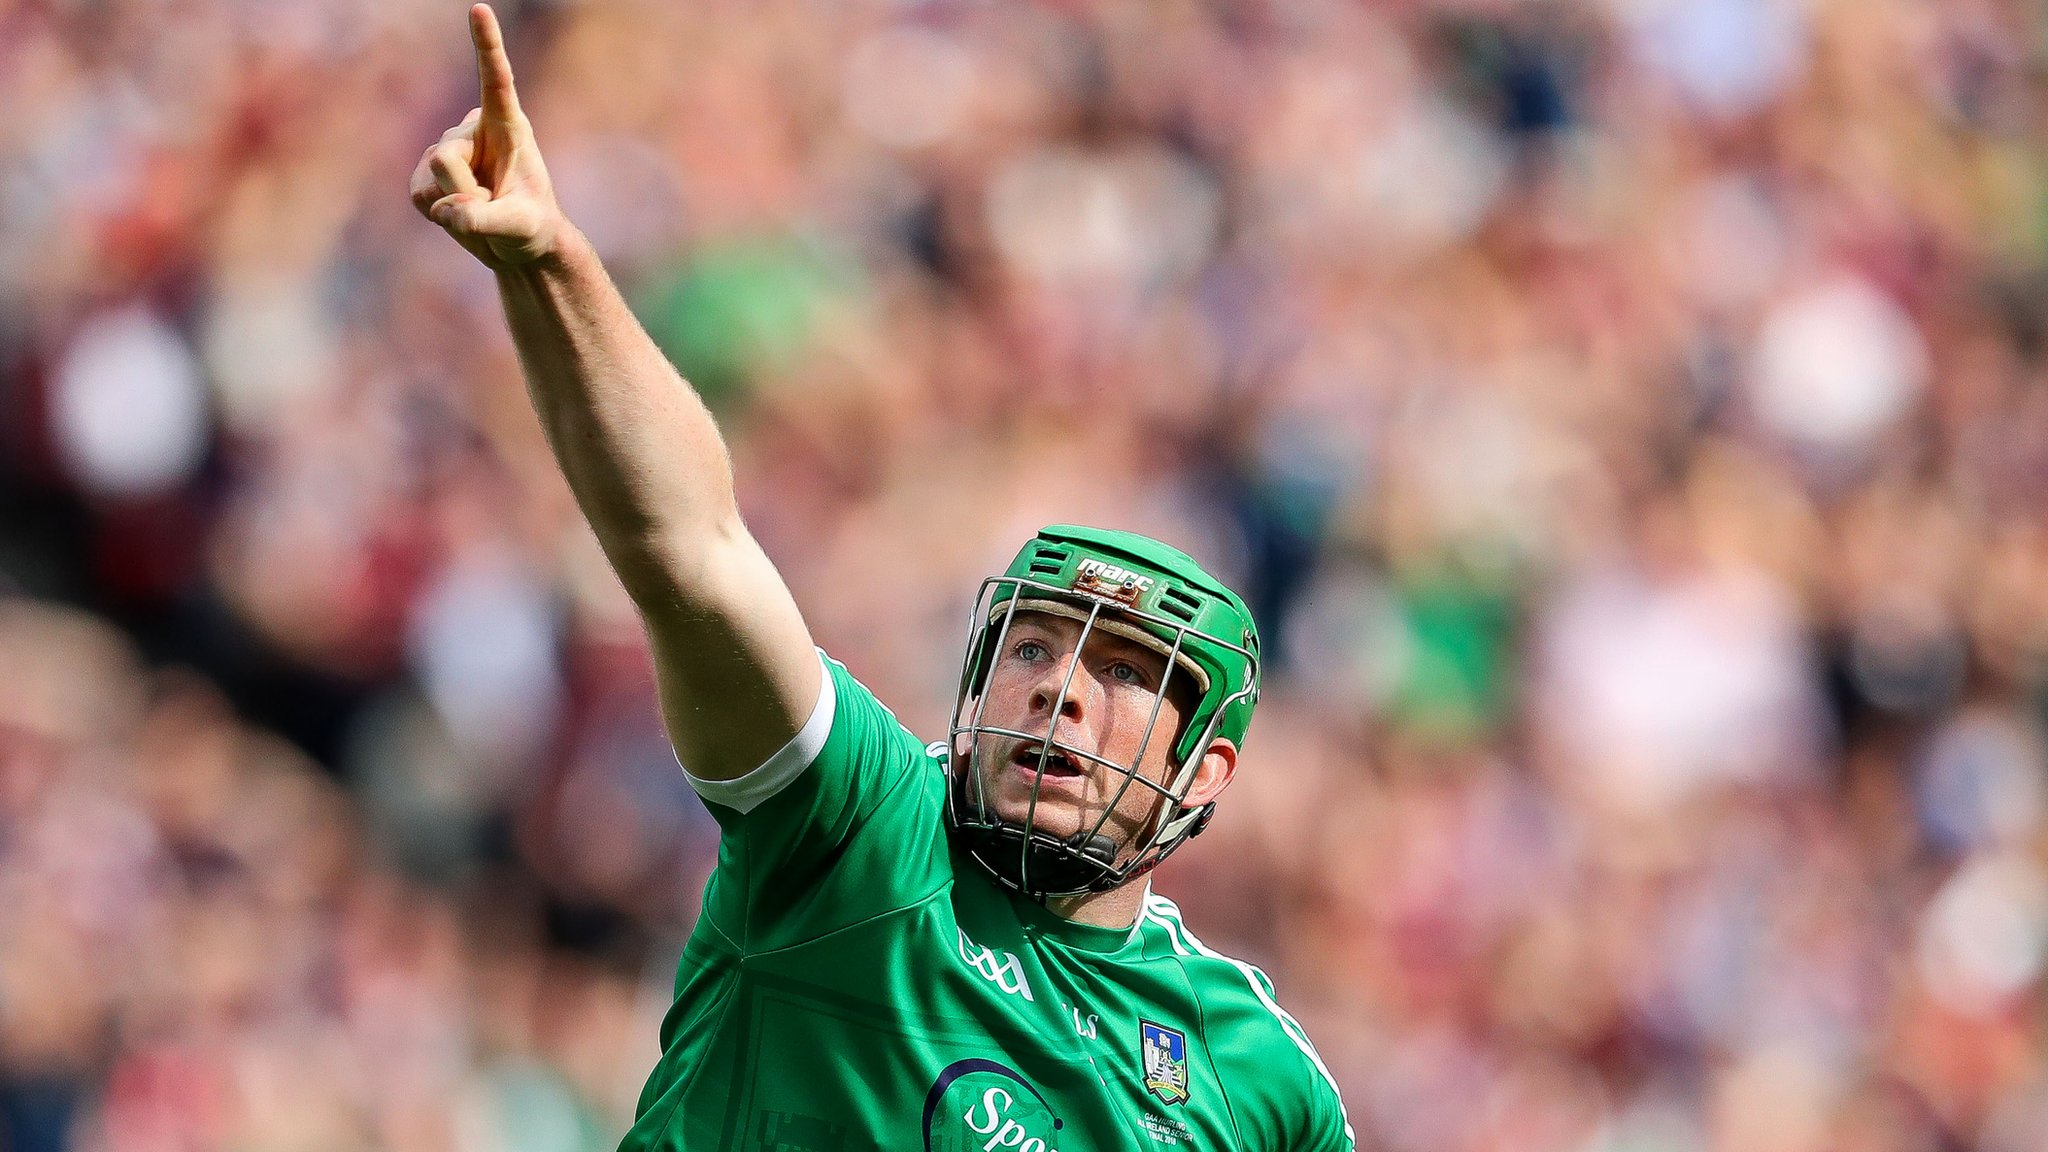 All-Ireland SHC Final: Limerick resist Galway fight-back to win by 3-16 to 2-18